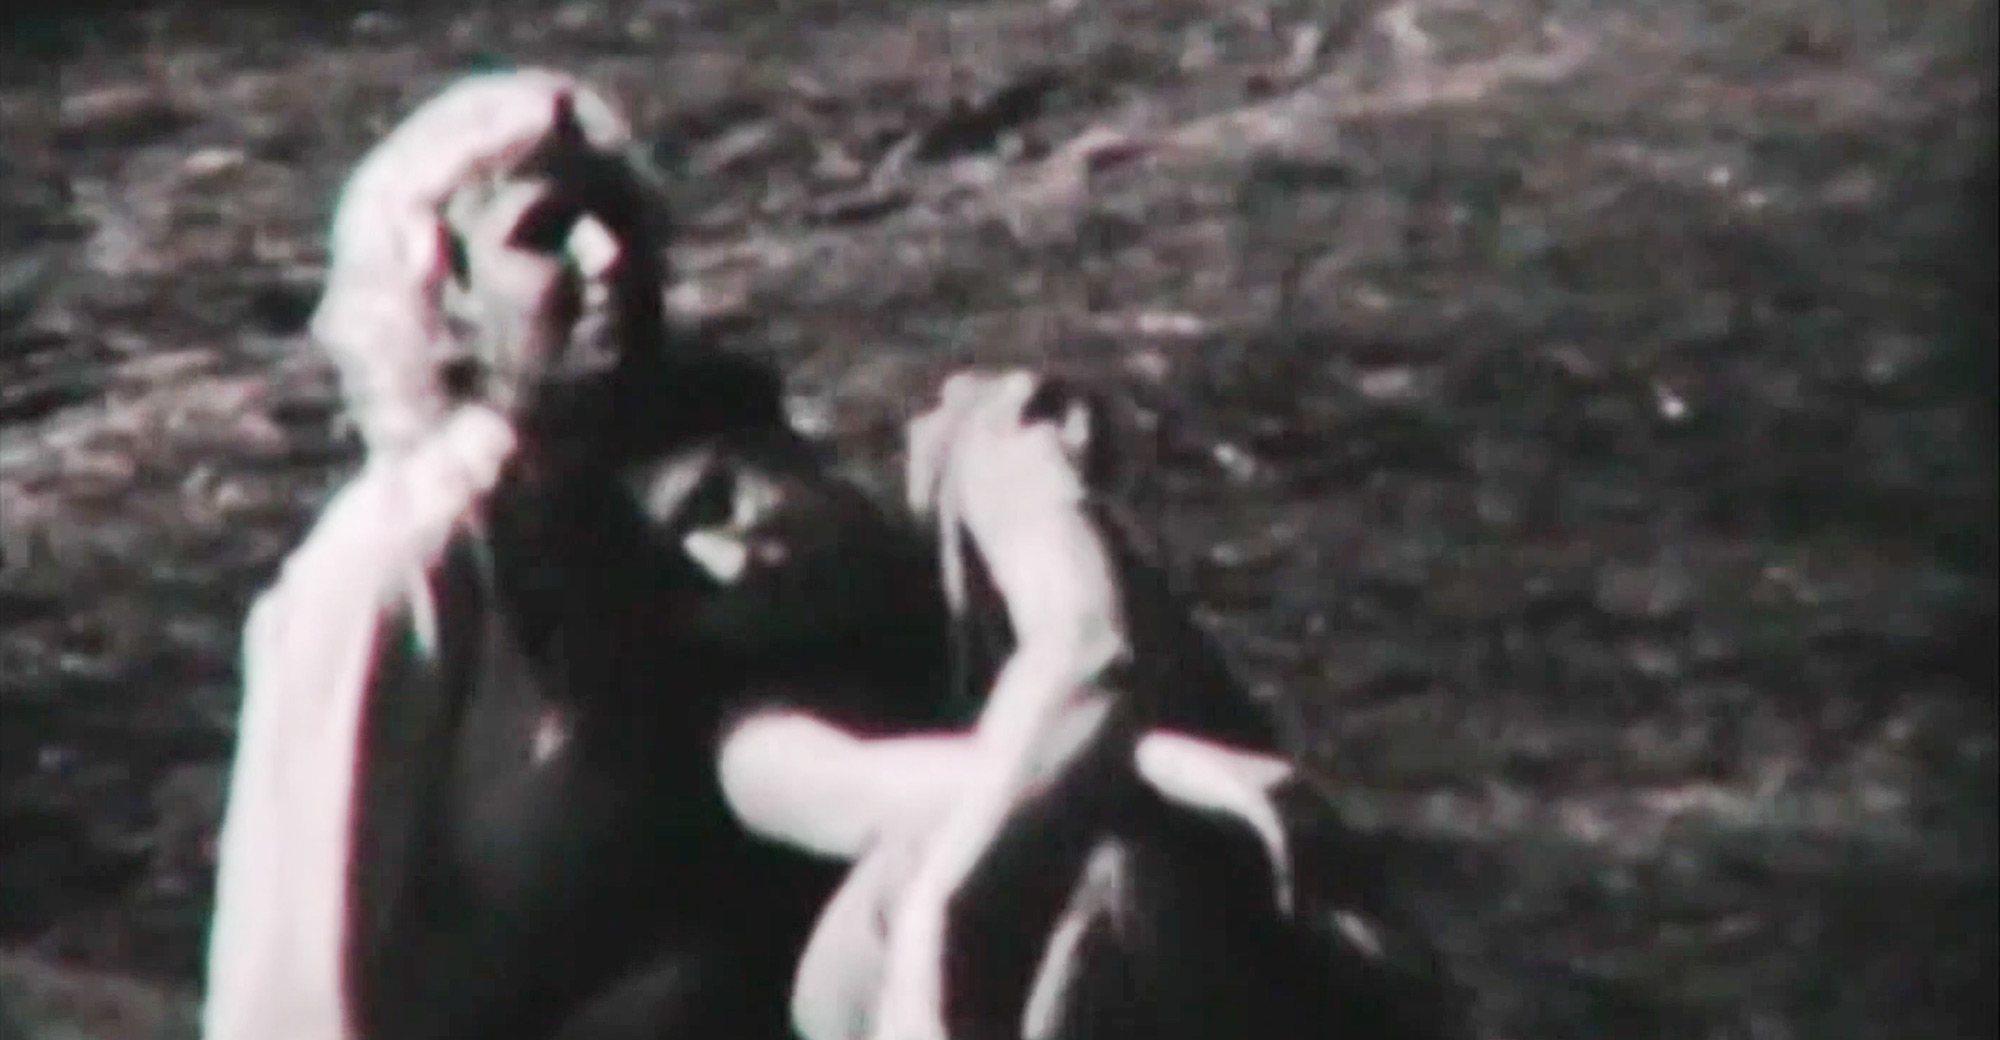 Still from the film «The Wonderful Years». Two-shot. Old black and white portrait of two smiling women, one hugging another. Both looking directly at the viewer.